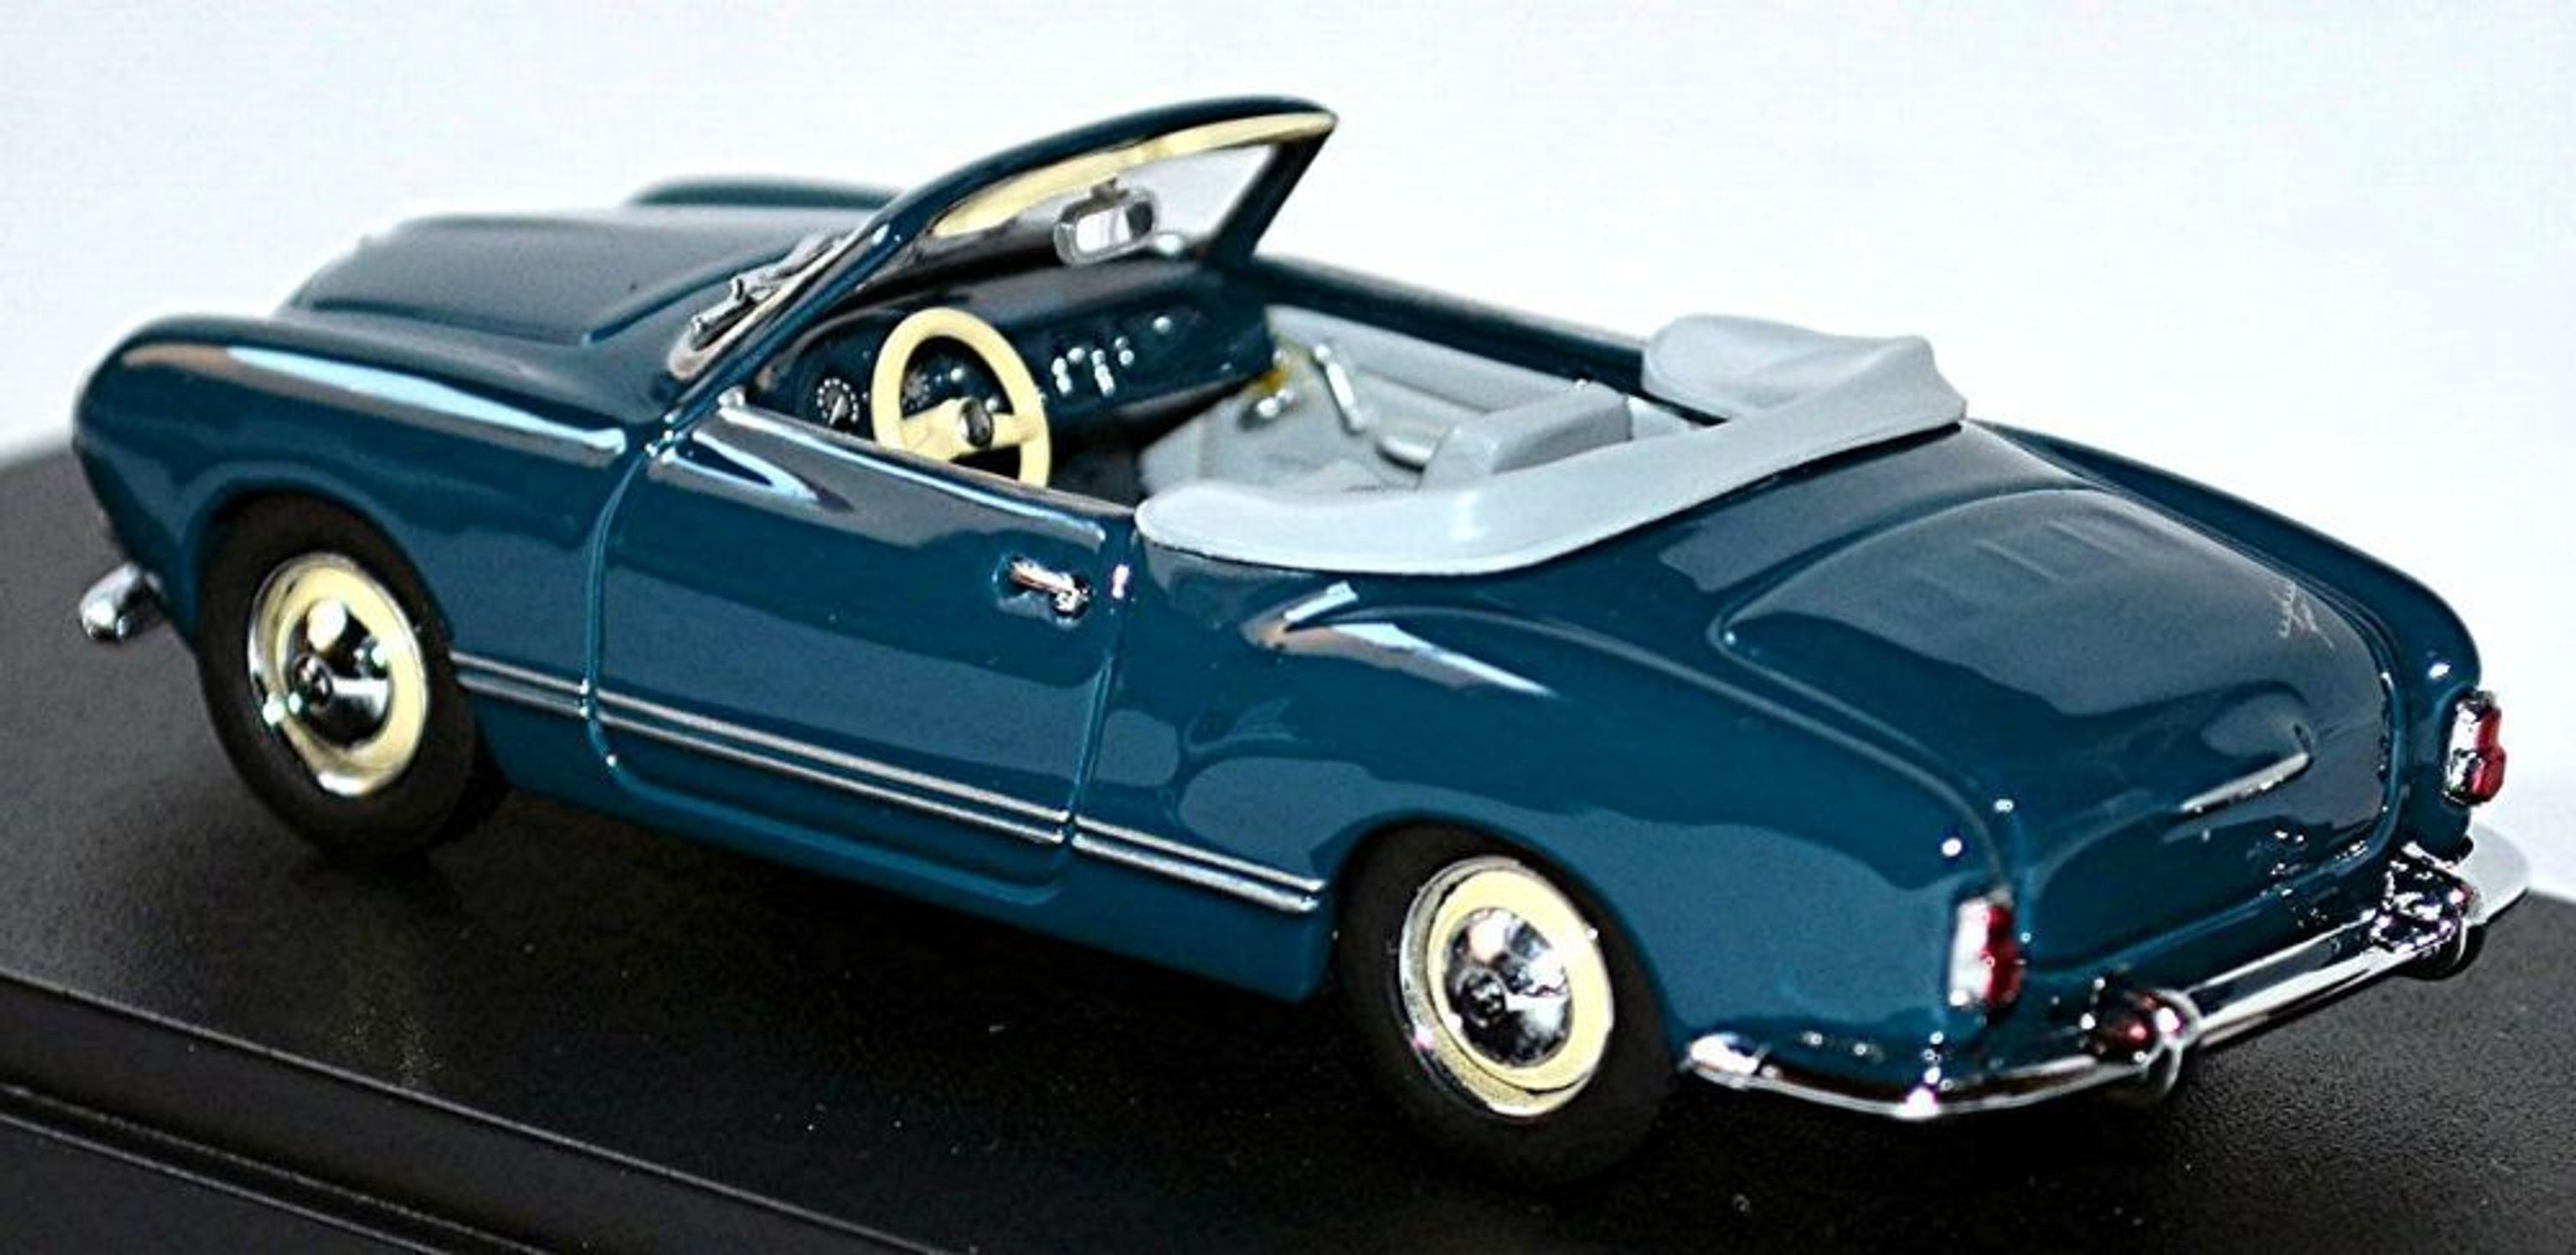 vw volkswagen karmann ghia cabrio convertible typ 14 1955. Black Bedroom Furniture Sets. Home Design Ideas